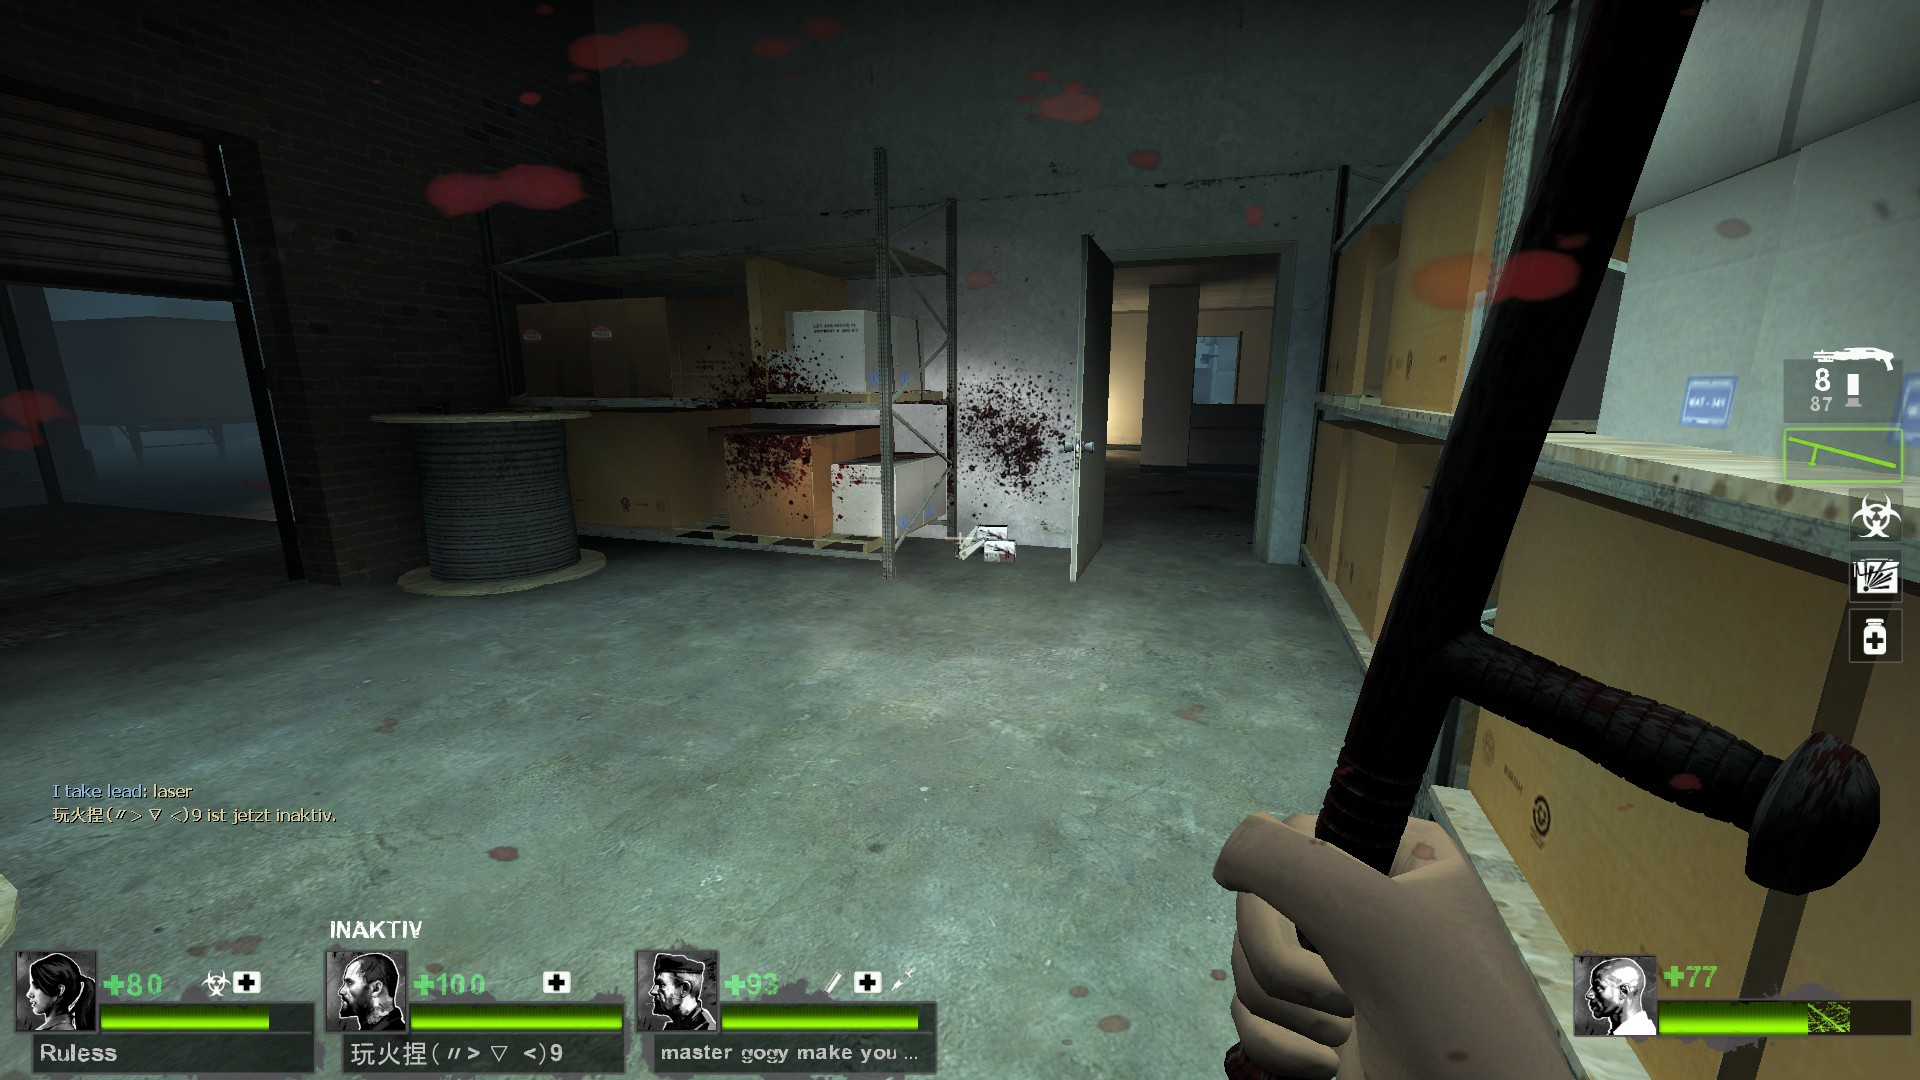 Left 4 Dead 2 - Detailed Guide for All Laser Sight Locations in Game - Map Guide - Potential spots, L4D1 maps - 149D42C